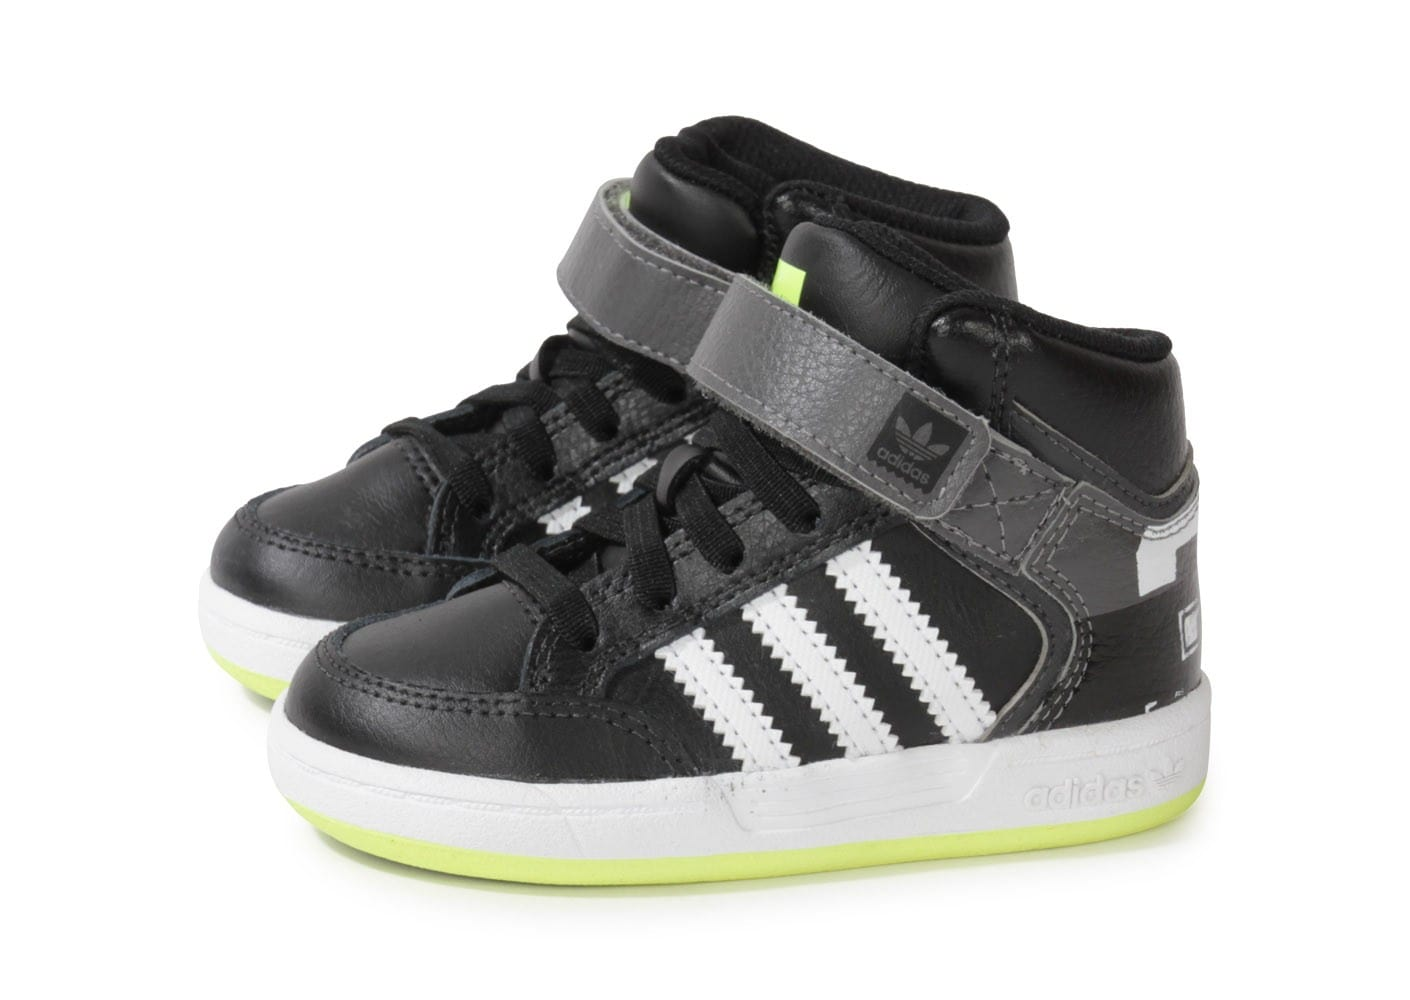 Casual Chaussures Adidas Enfant 35 Pointure Blanches Ff0y6s PkN0XOZ8nw